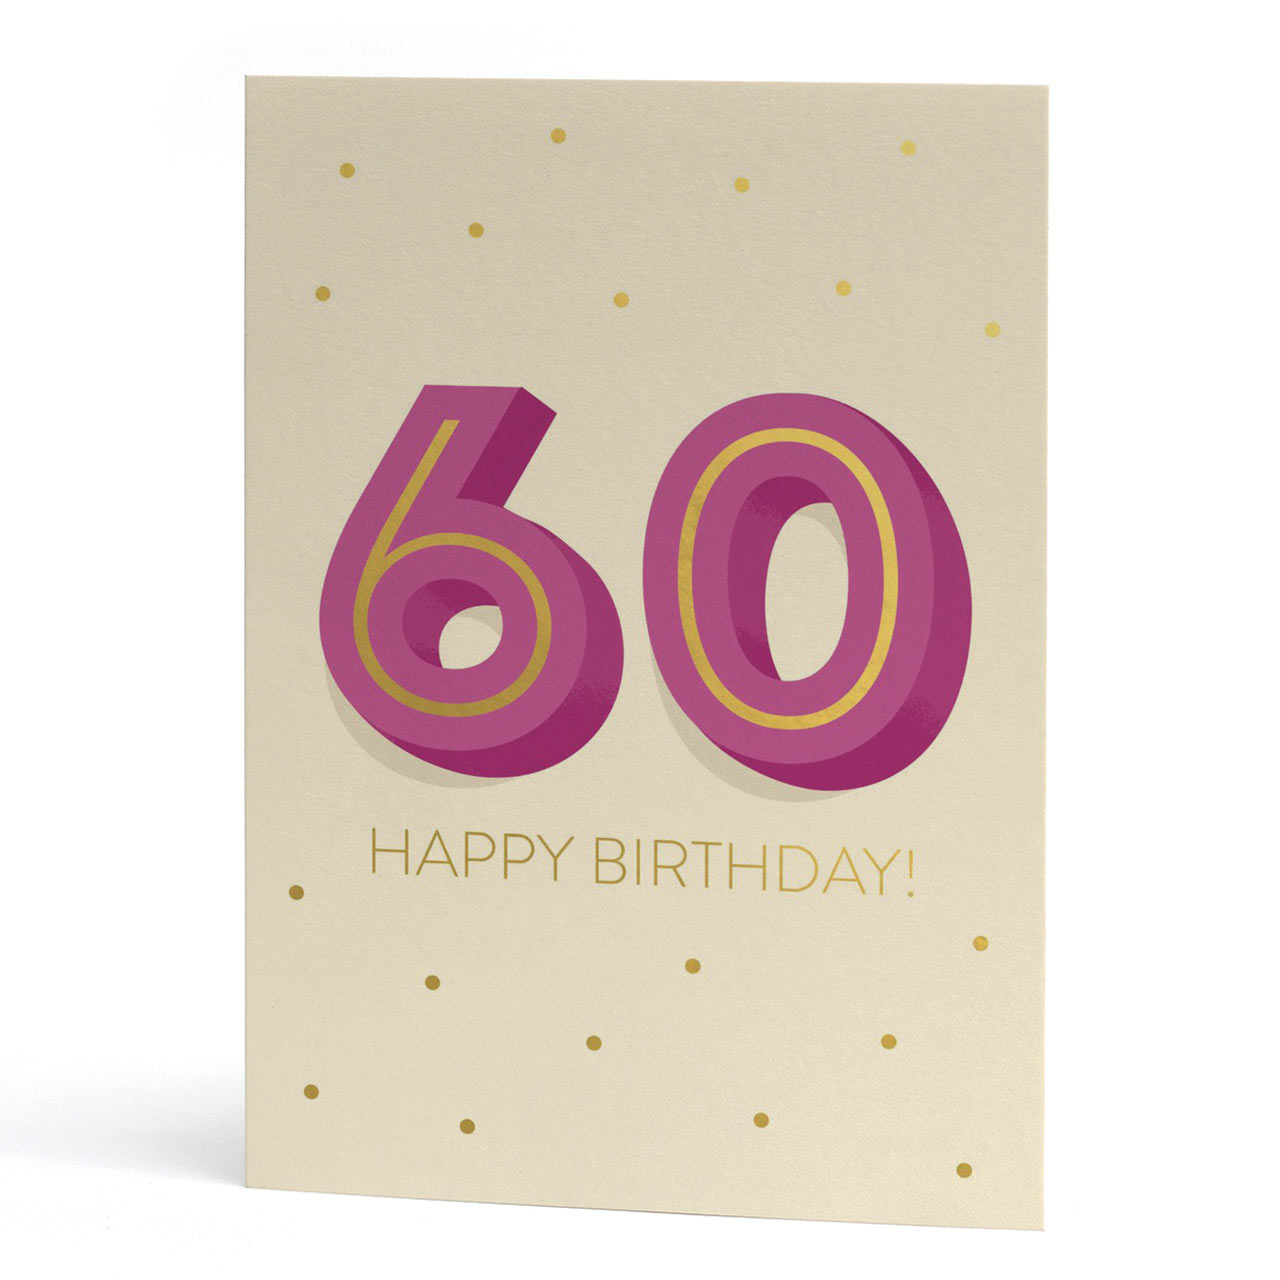 Big 60th Birthday Gold Foil Greeting Card